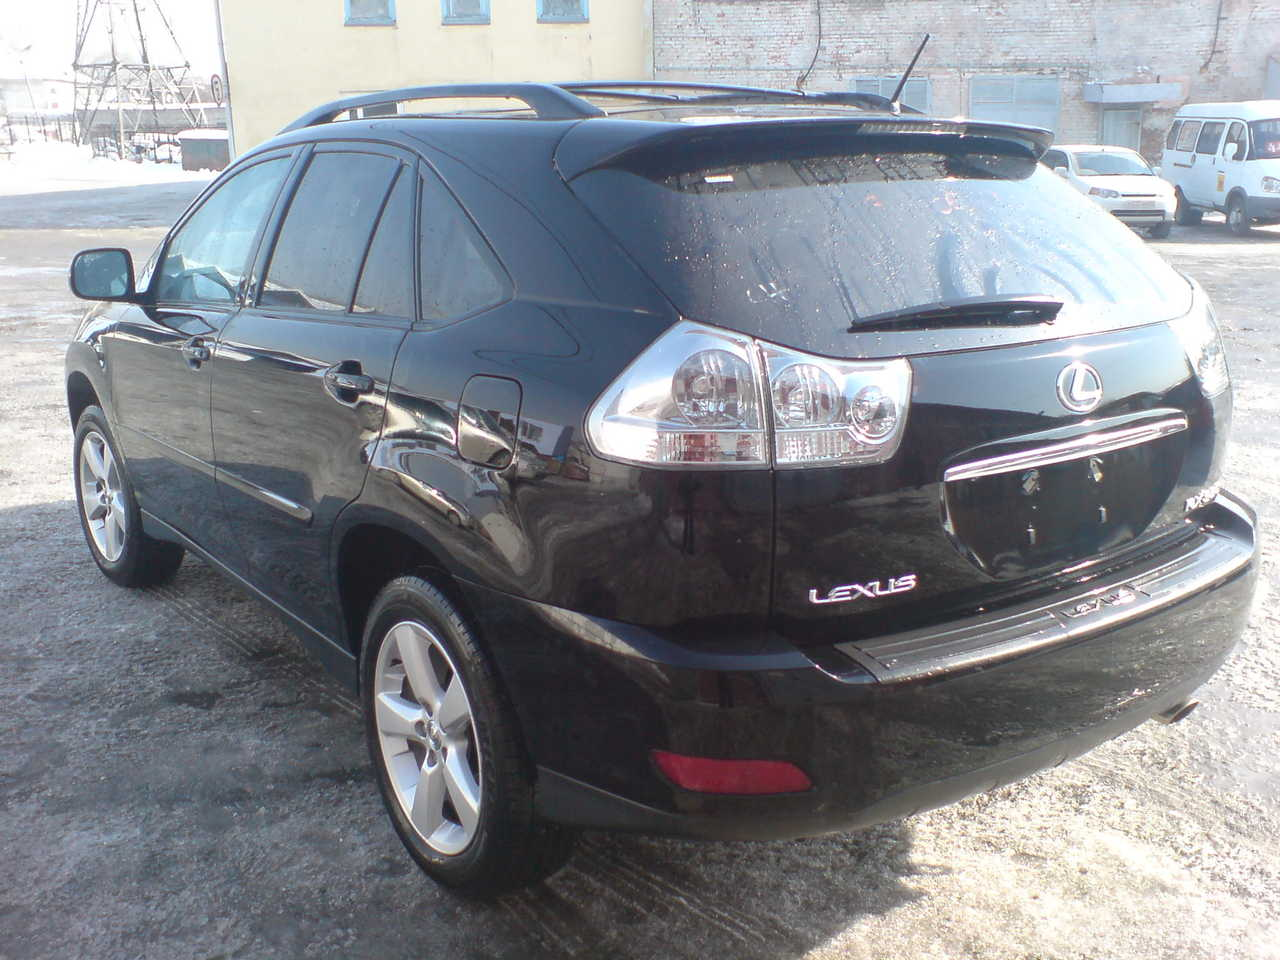 2006 lexus rx330 photos 3302cc gasoline automatic for sale. Black Bedroom Furniture Sets. Home Design Ideas